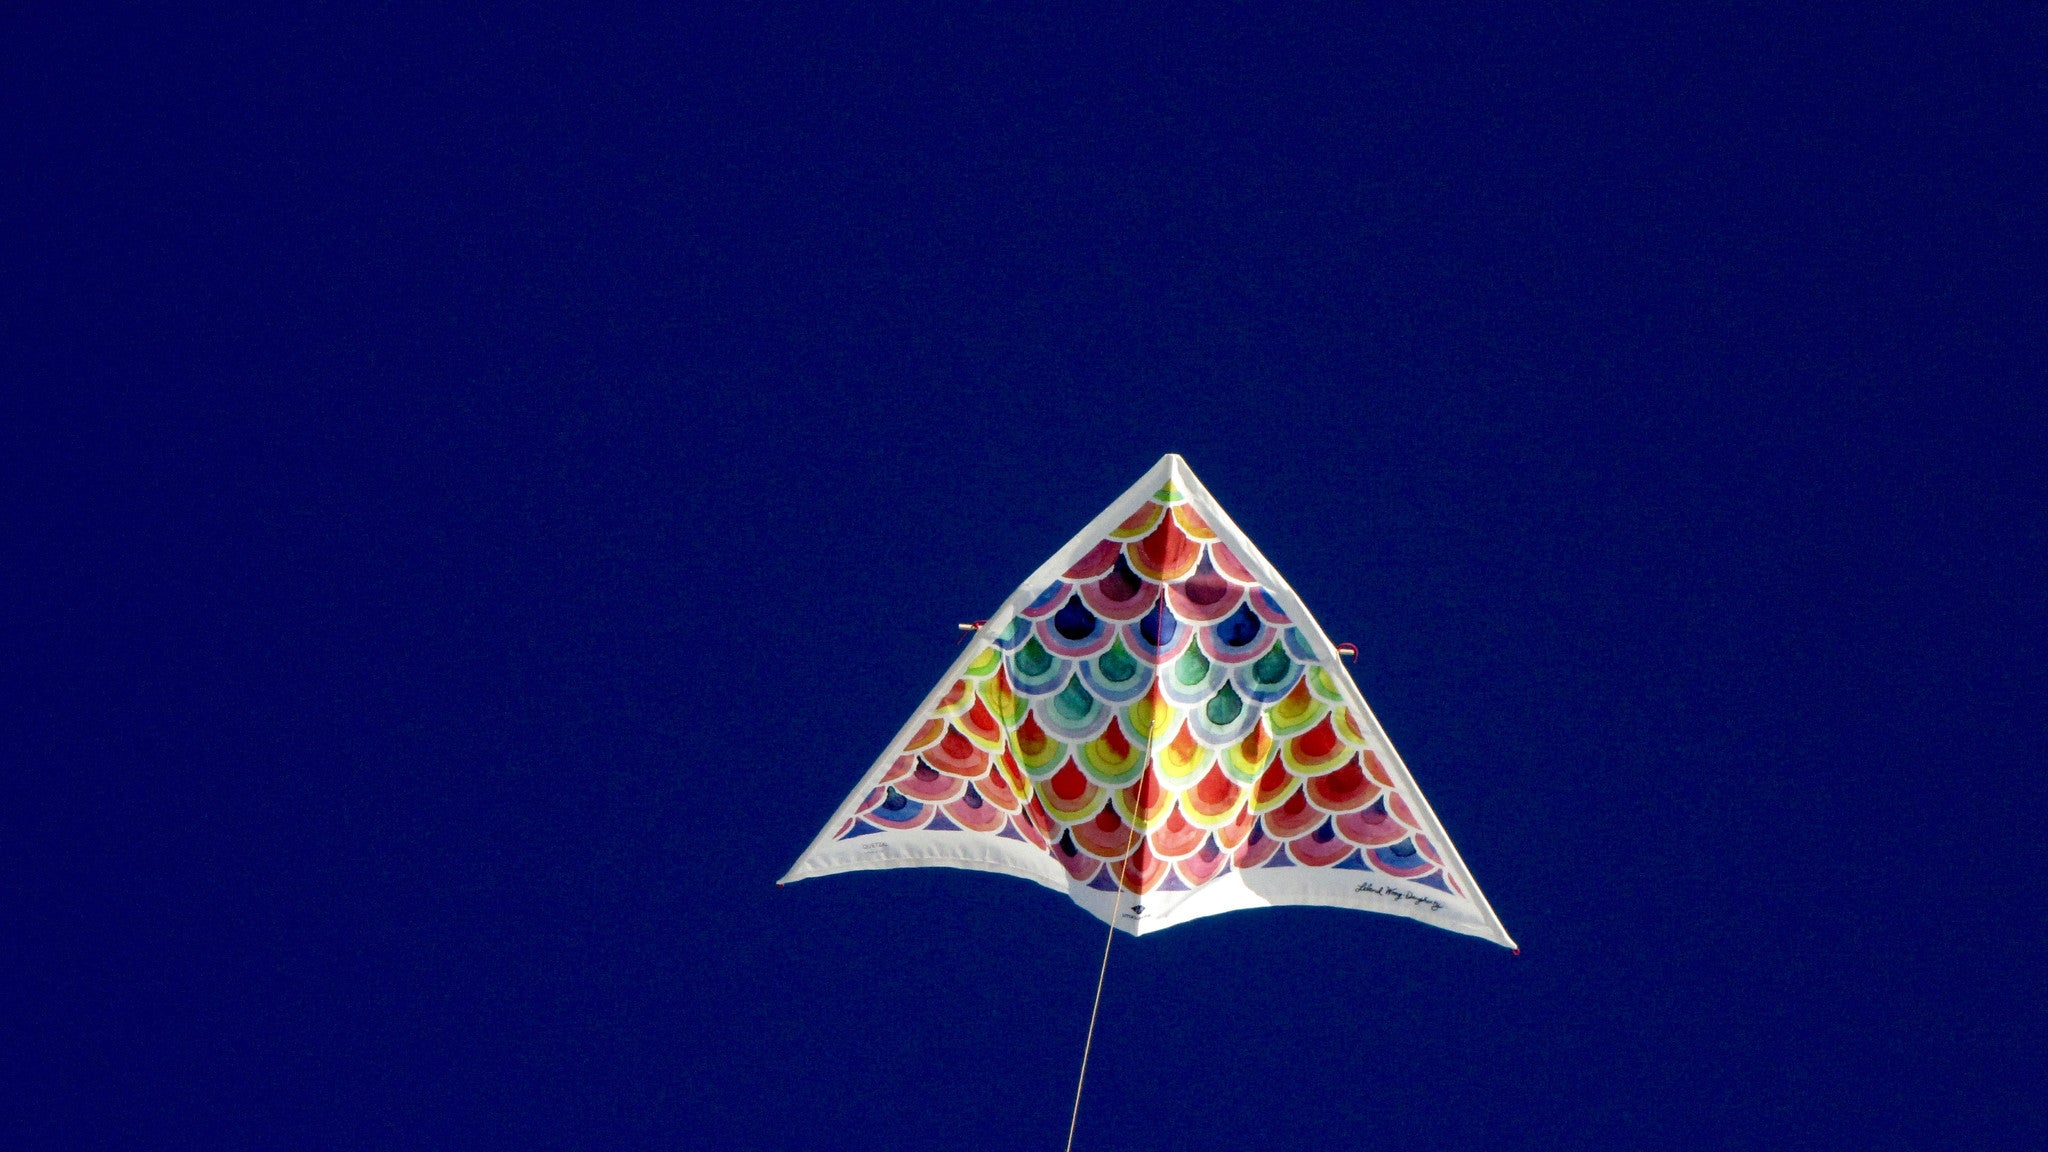 5 Surprising Ways a Kite Can Change Your Life